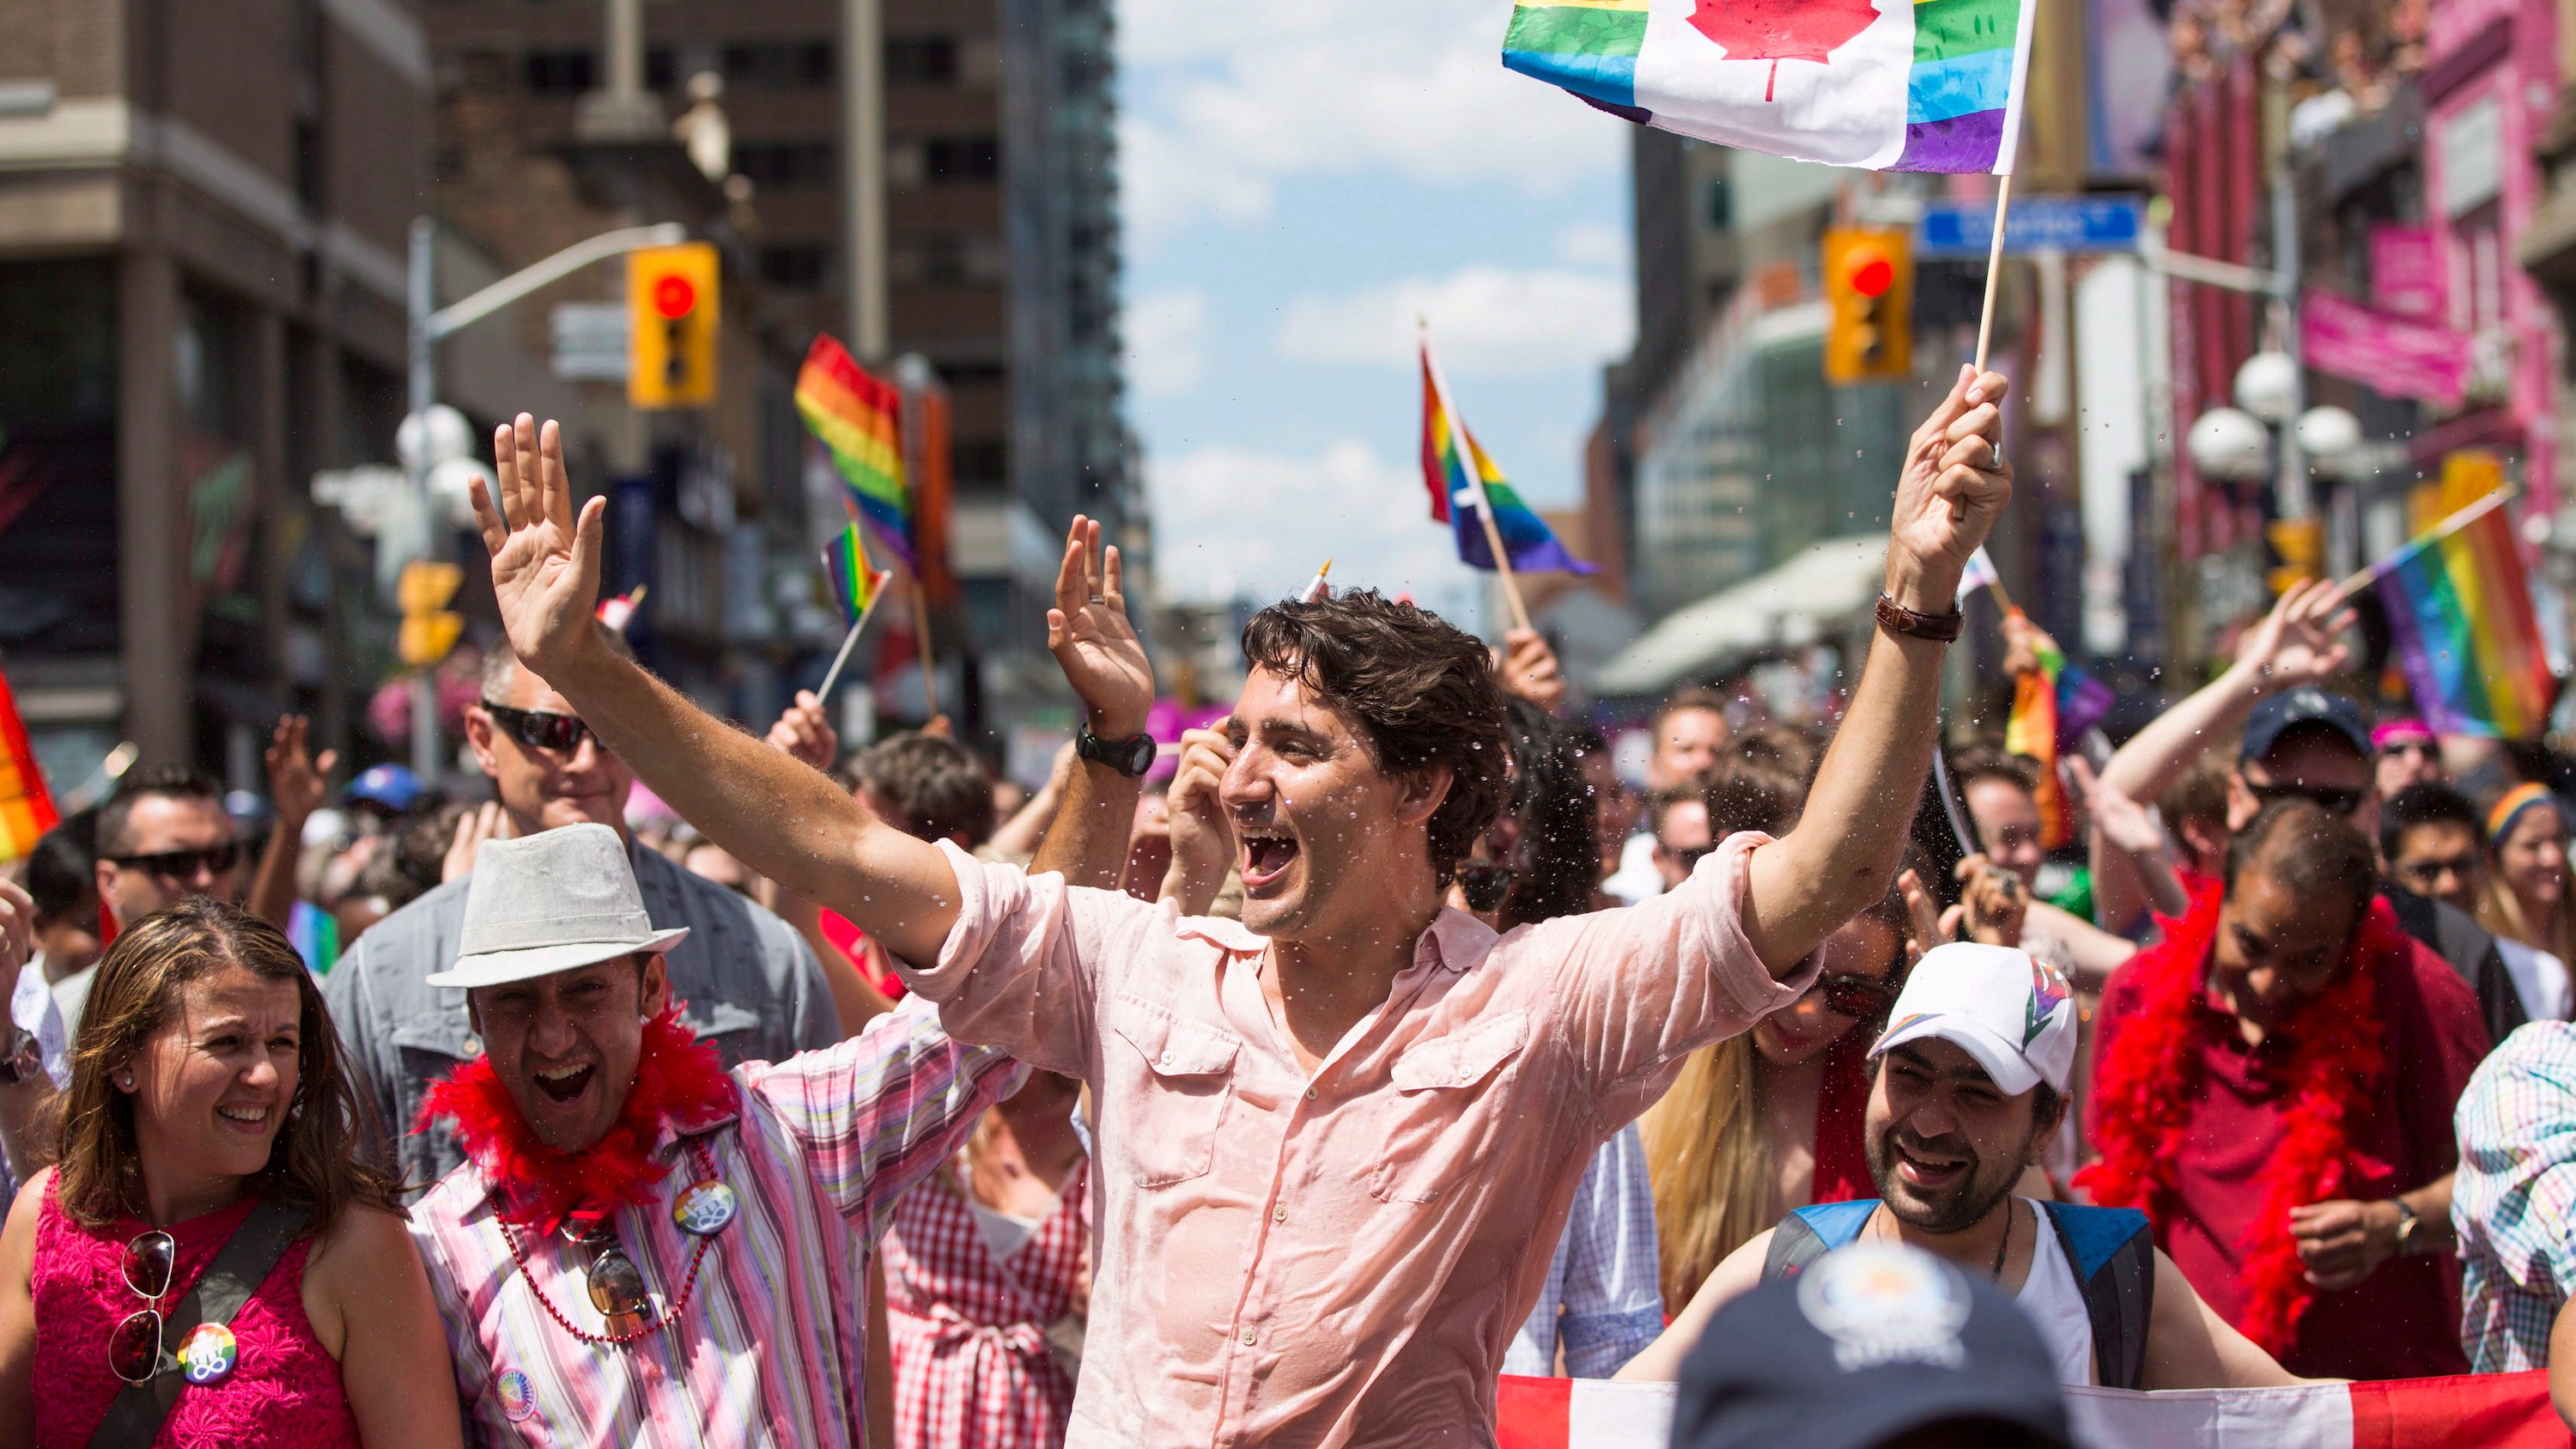 Trudeau to apologize to LGBT community for government